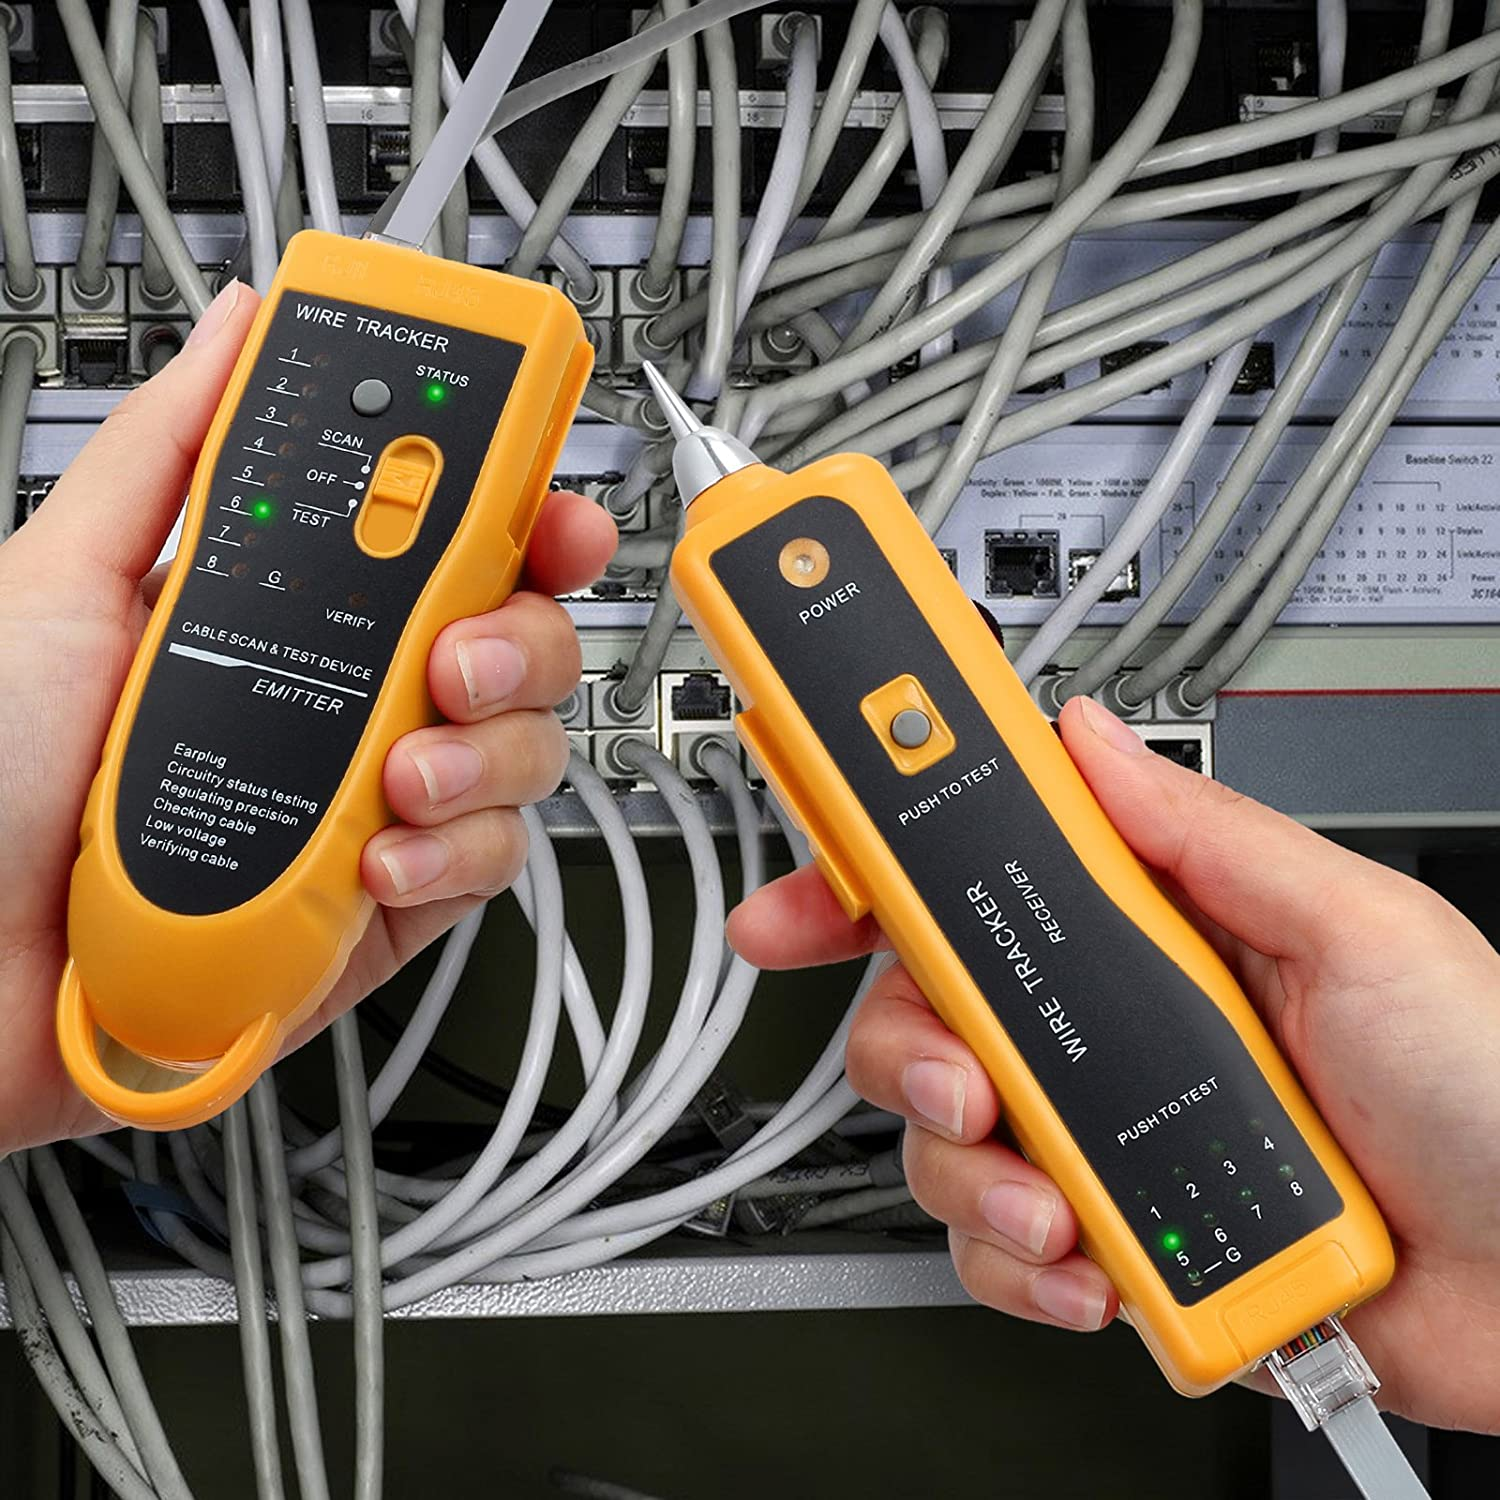 Network Tester Xq 350 Handheld Cable Tracer With Earphone High Featured Electrical Circuit Tracers And Testers At Test Equipment Sensitive Telephone Wire Tracker